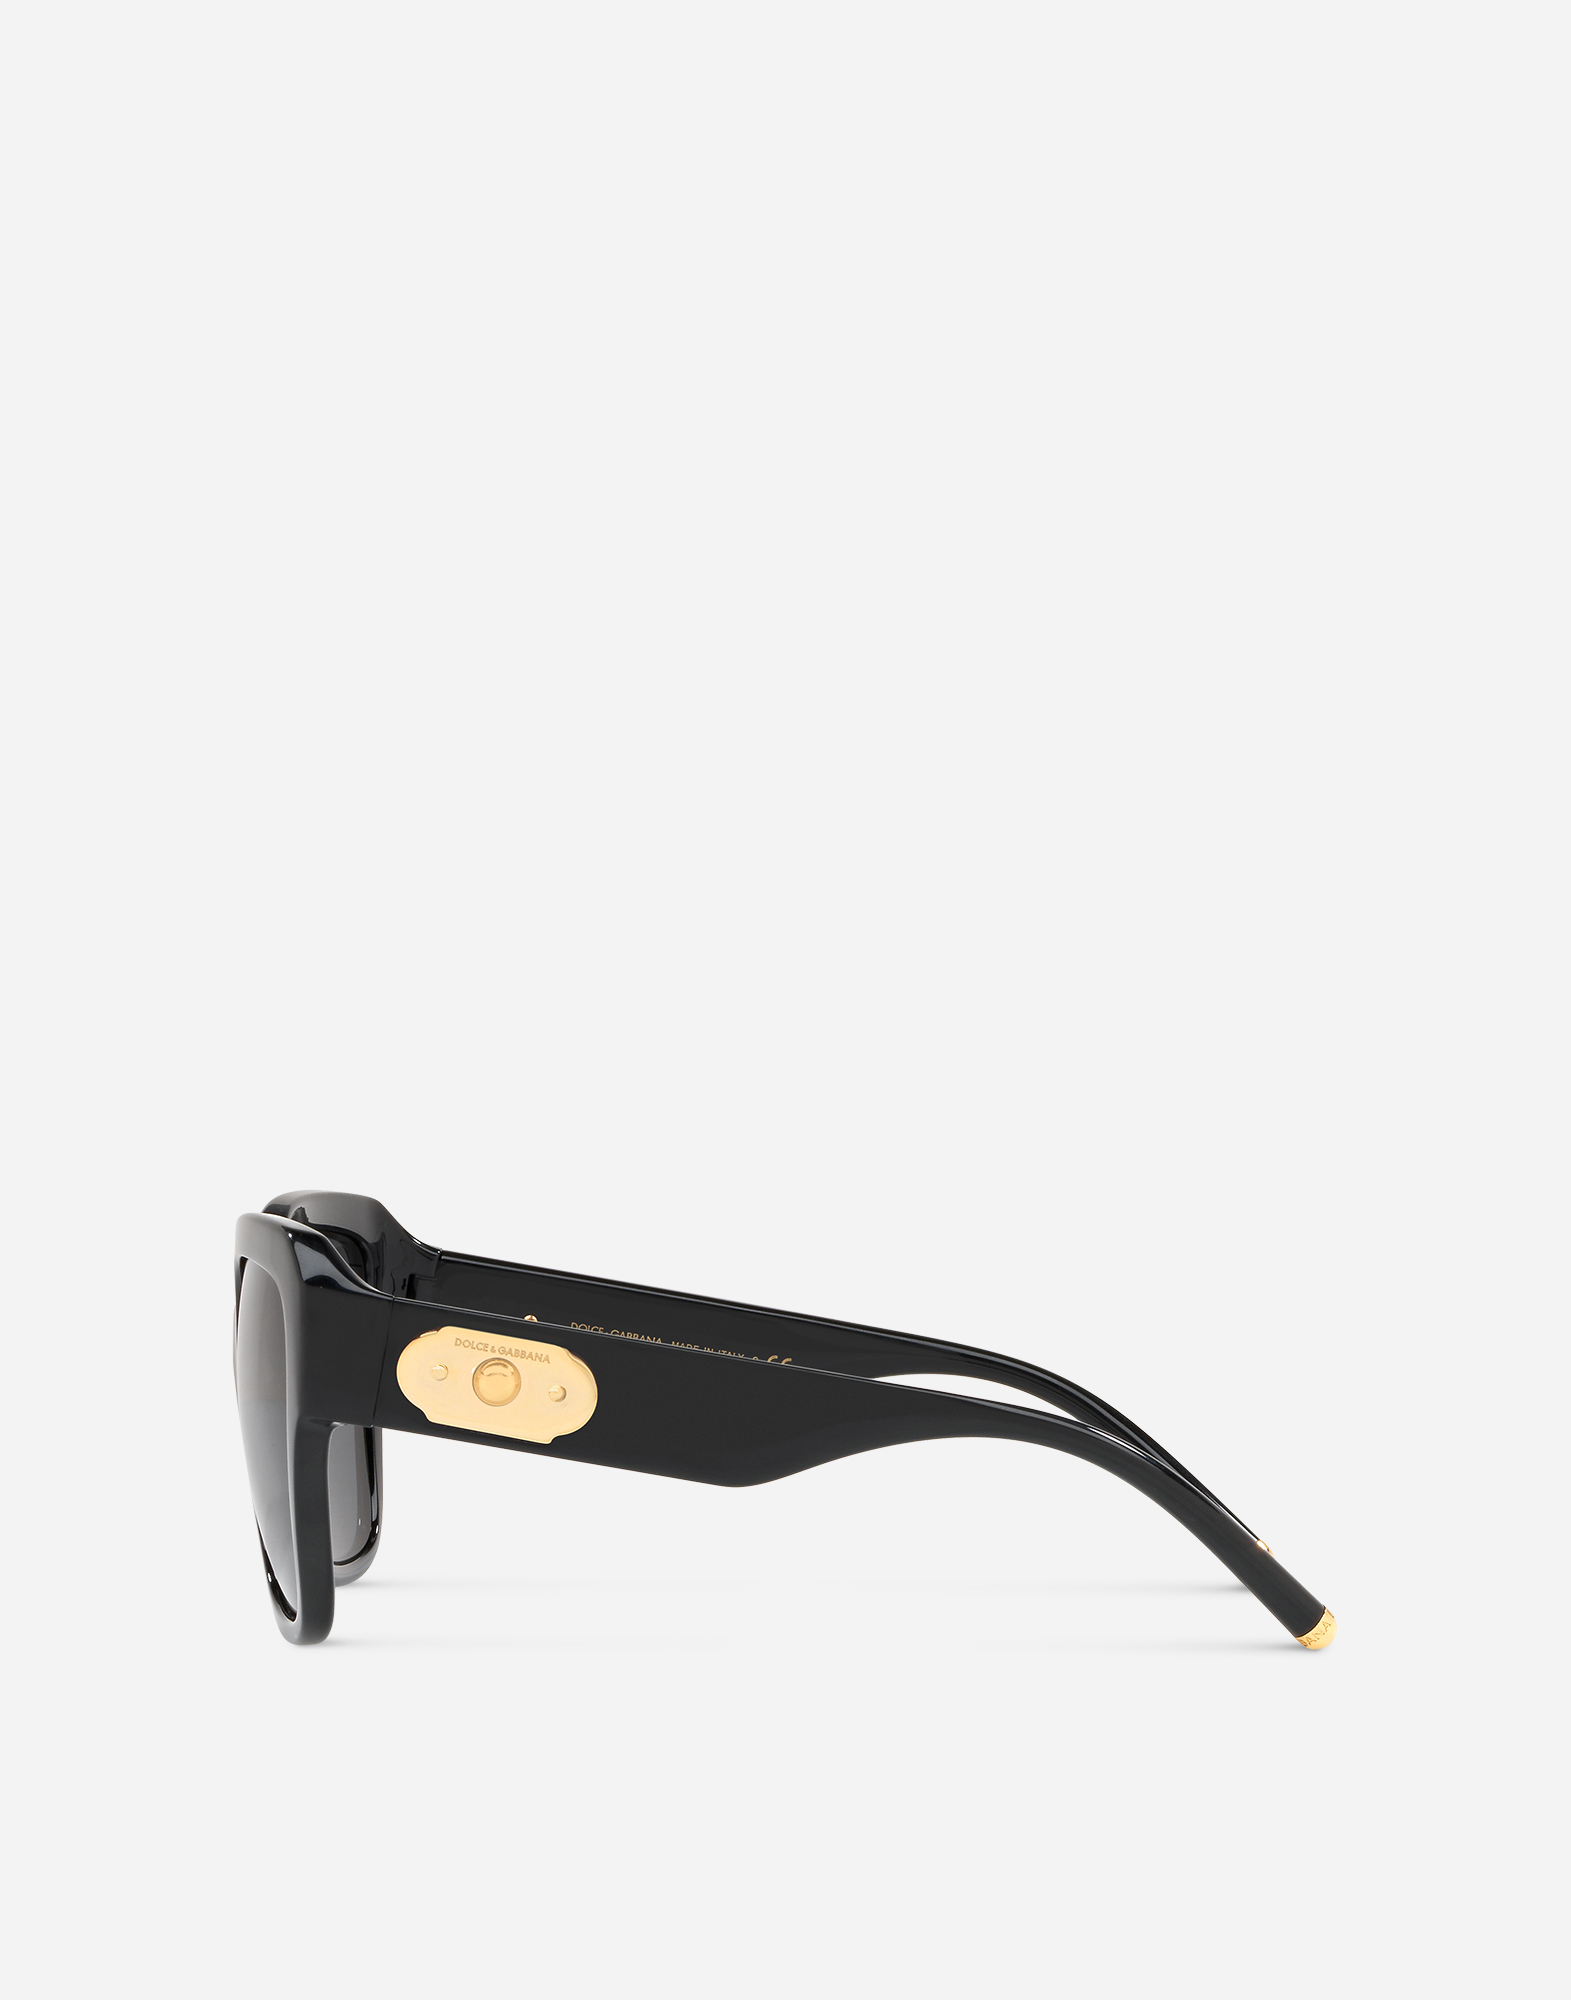 SQUARE SUNGLASSES IN NYLON FIBER